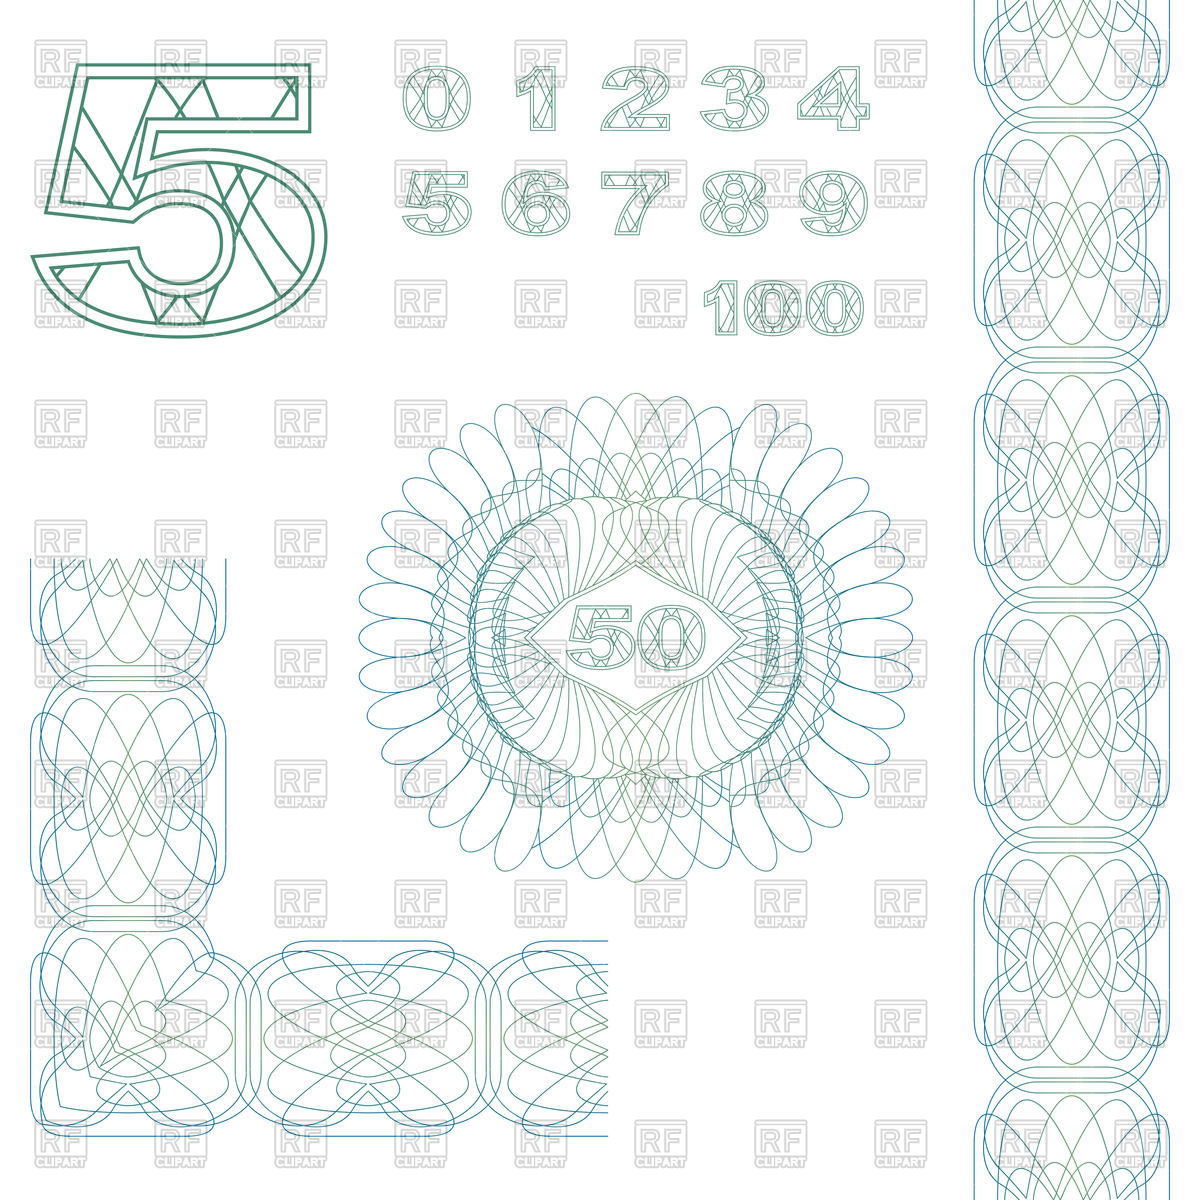 Guilloche Decorative Elements And Numbers For Certificate Or Diploma